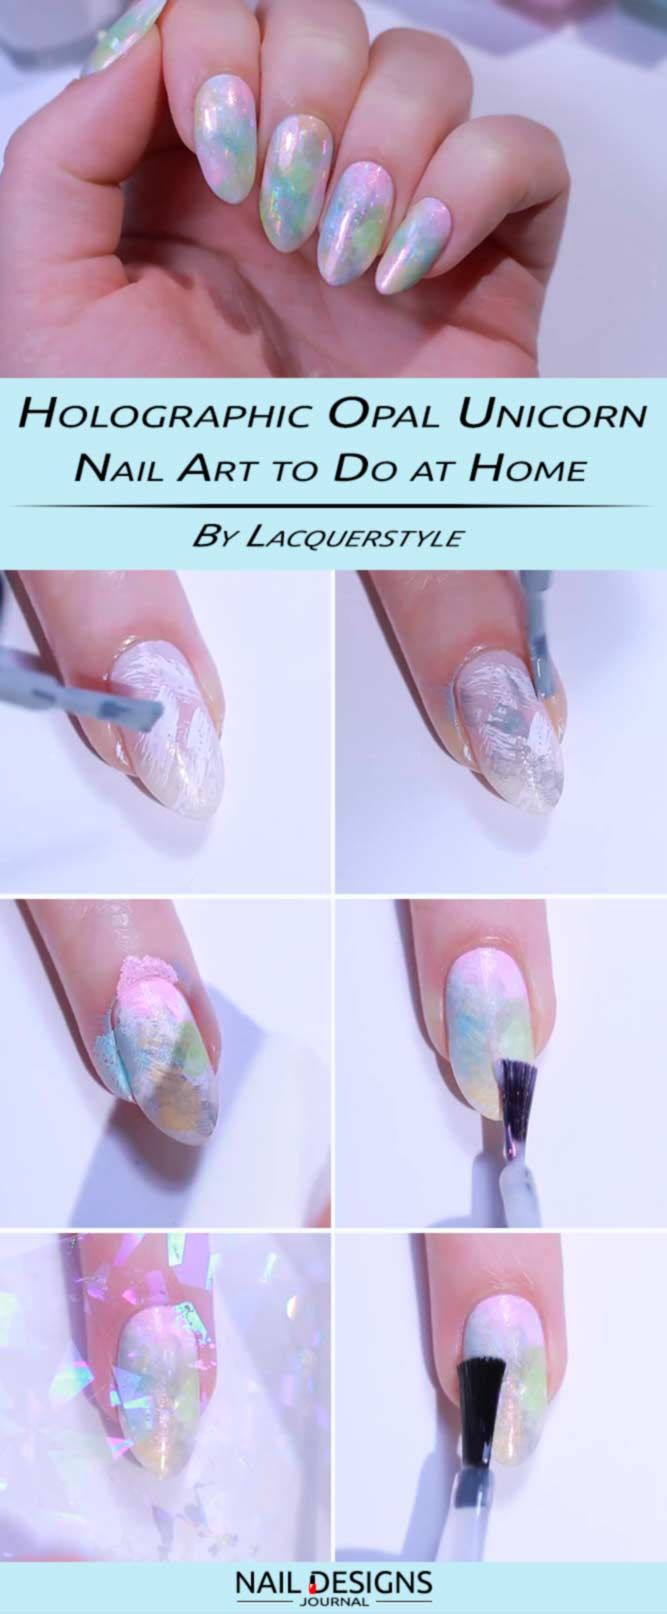 12 Step by Step Tutorials How to do Nail Designs at Home - Nagel en ...